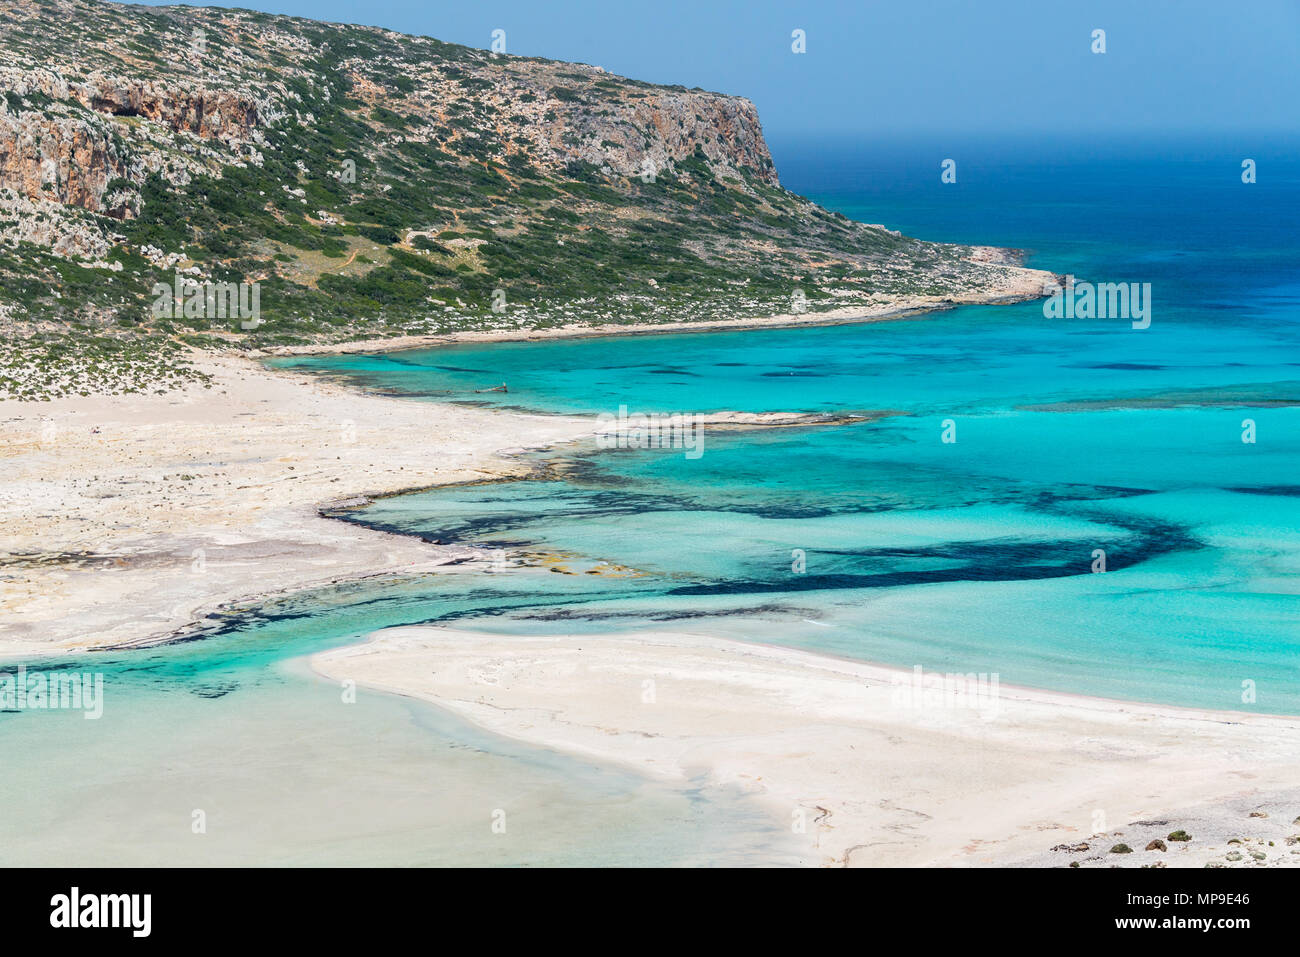 Balos beach and Gramvousa island near Kissamos in Crete, Greece Stock Photo